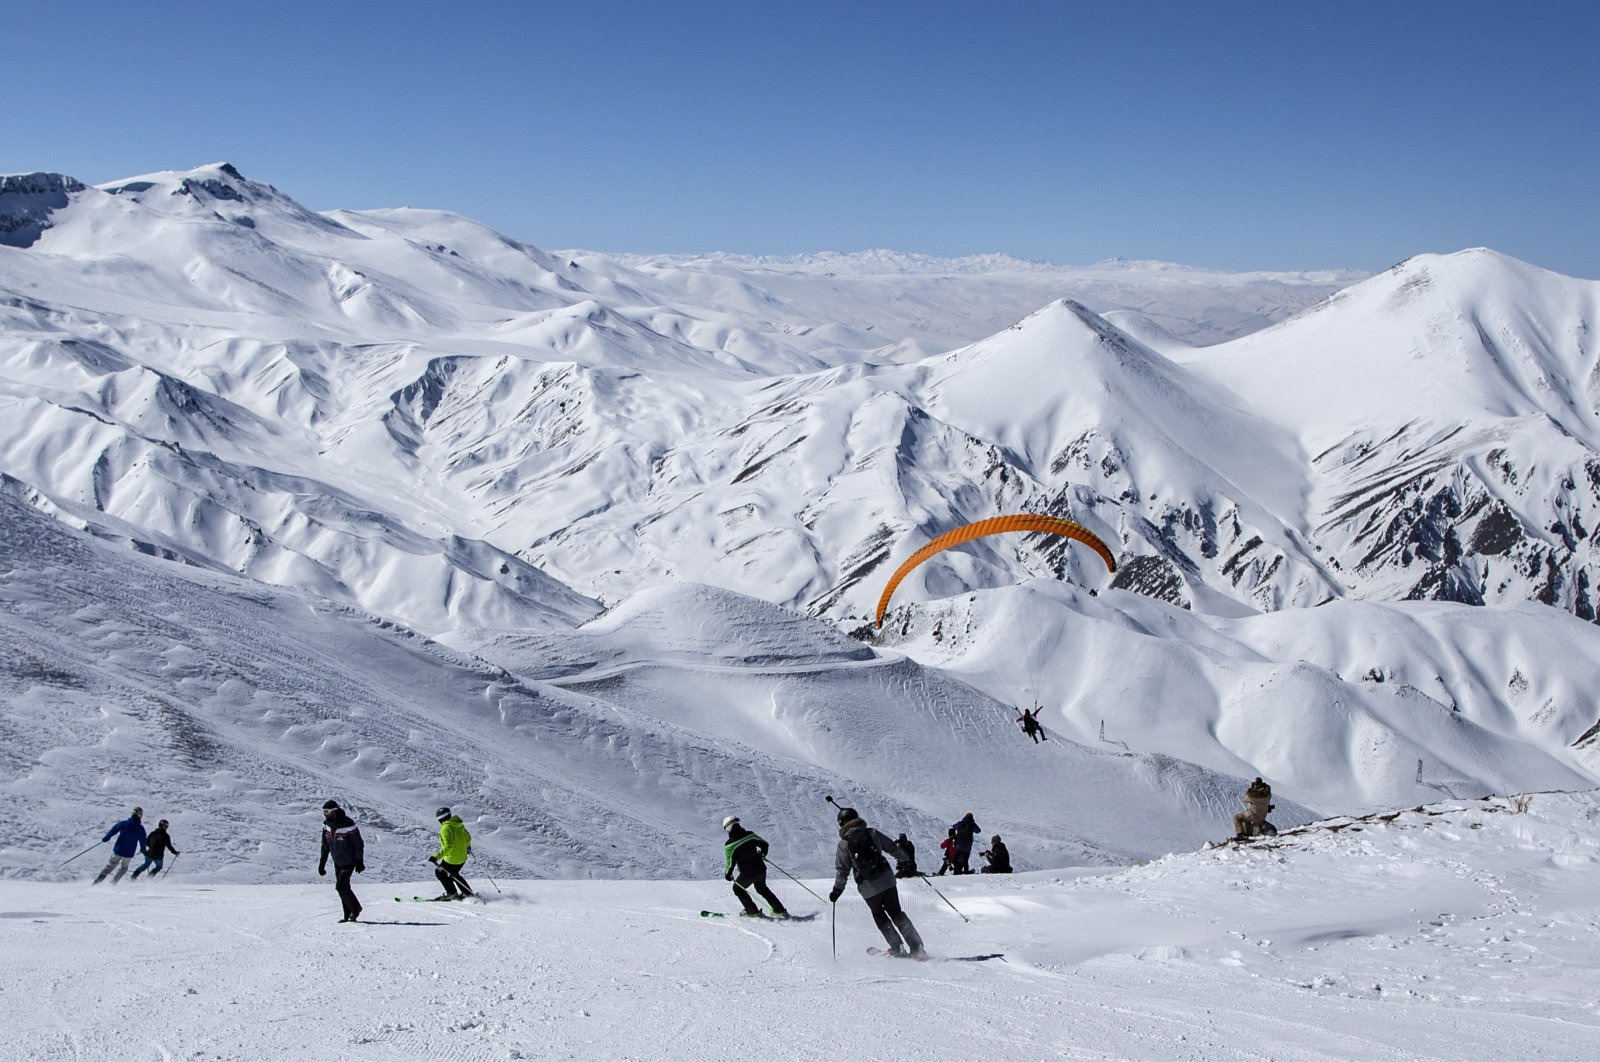 People ski on a slope of Palandöken mountain, one of the prominent winter tourism spots in the country, as a paraglider takes off during the COVID-19 in Erzurum, Turkey, March 4, 2021. (EPA Photo)